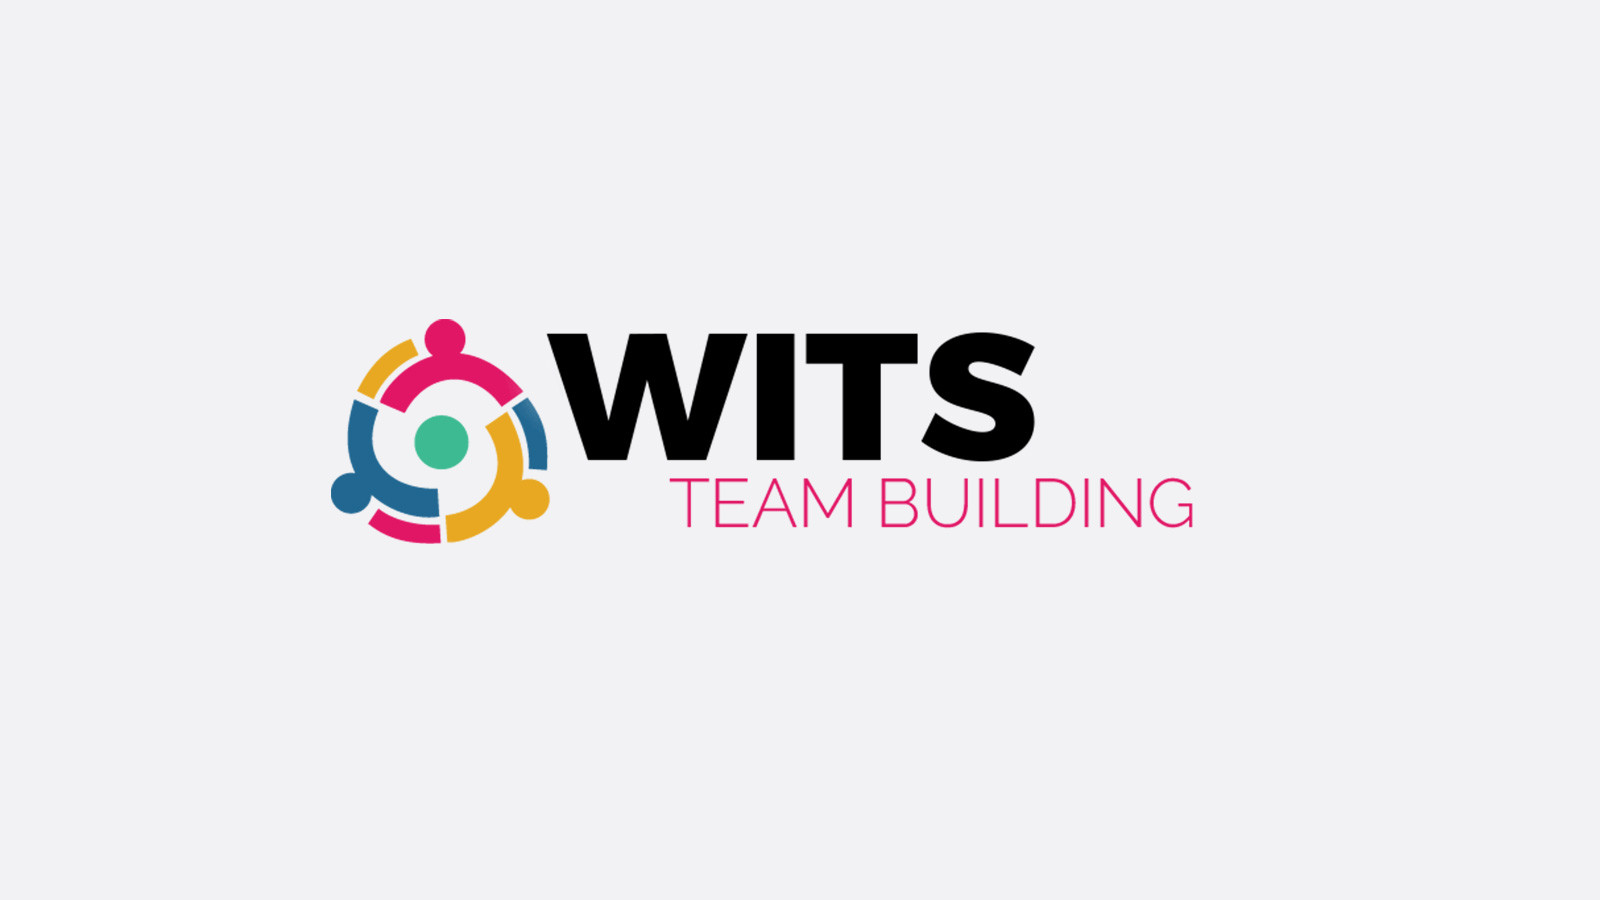 WITS Team Building